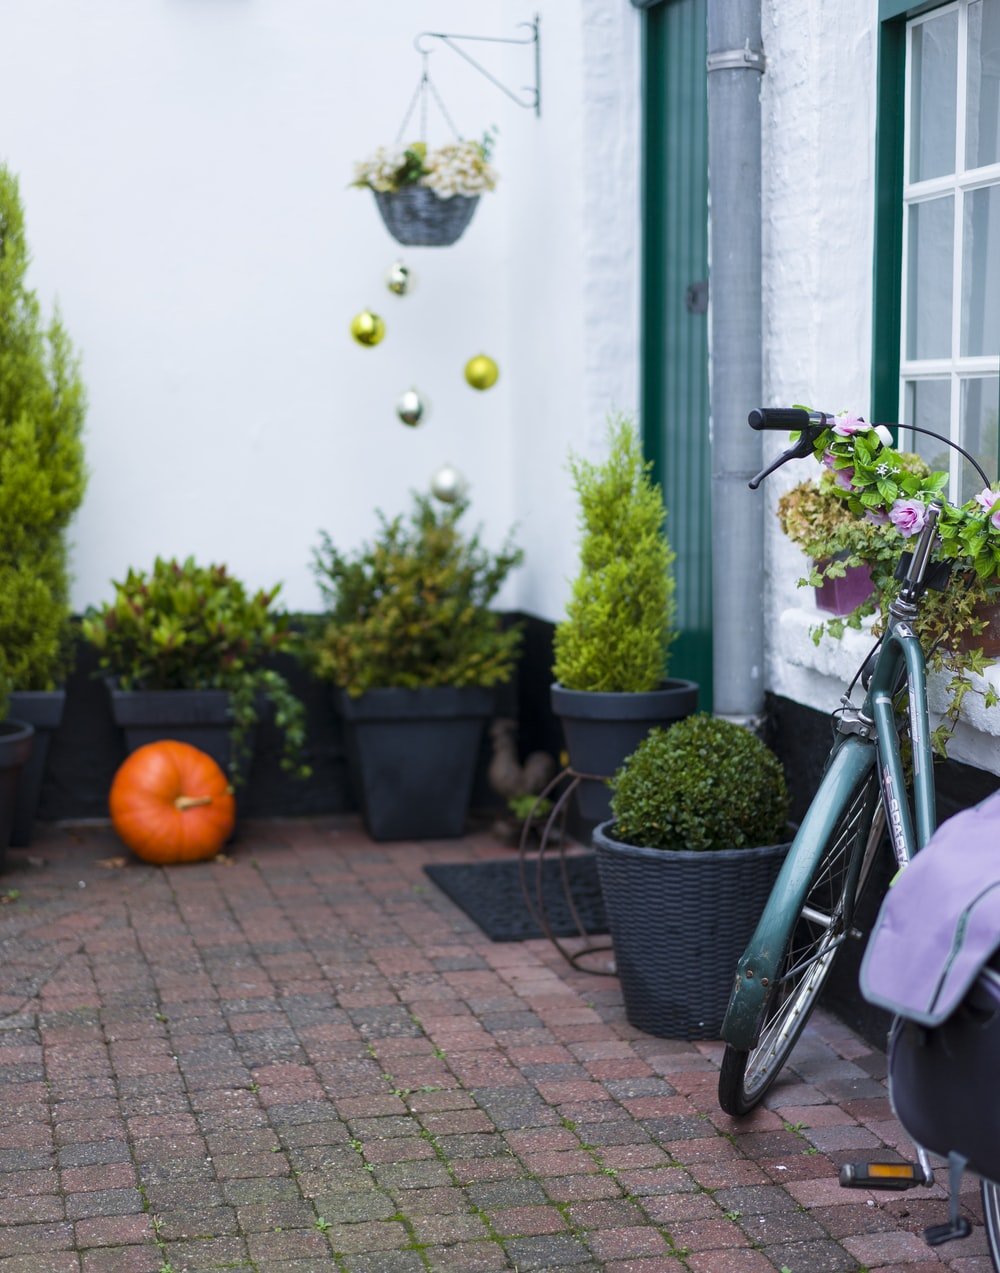 green bicycle parked beside white and green house